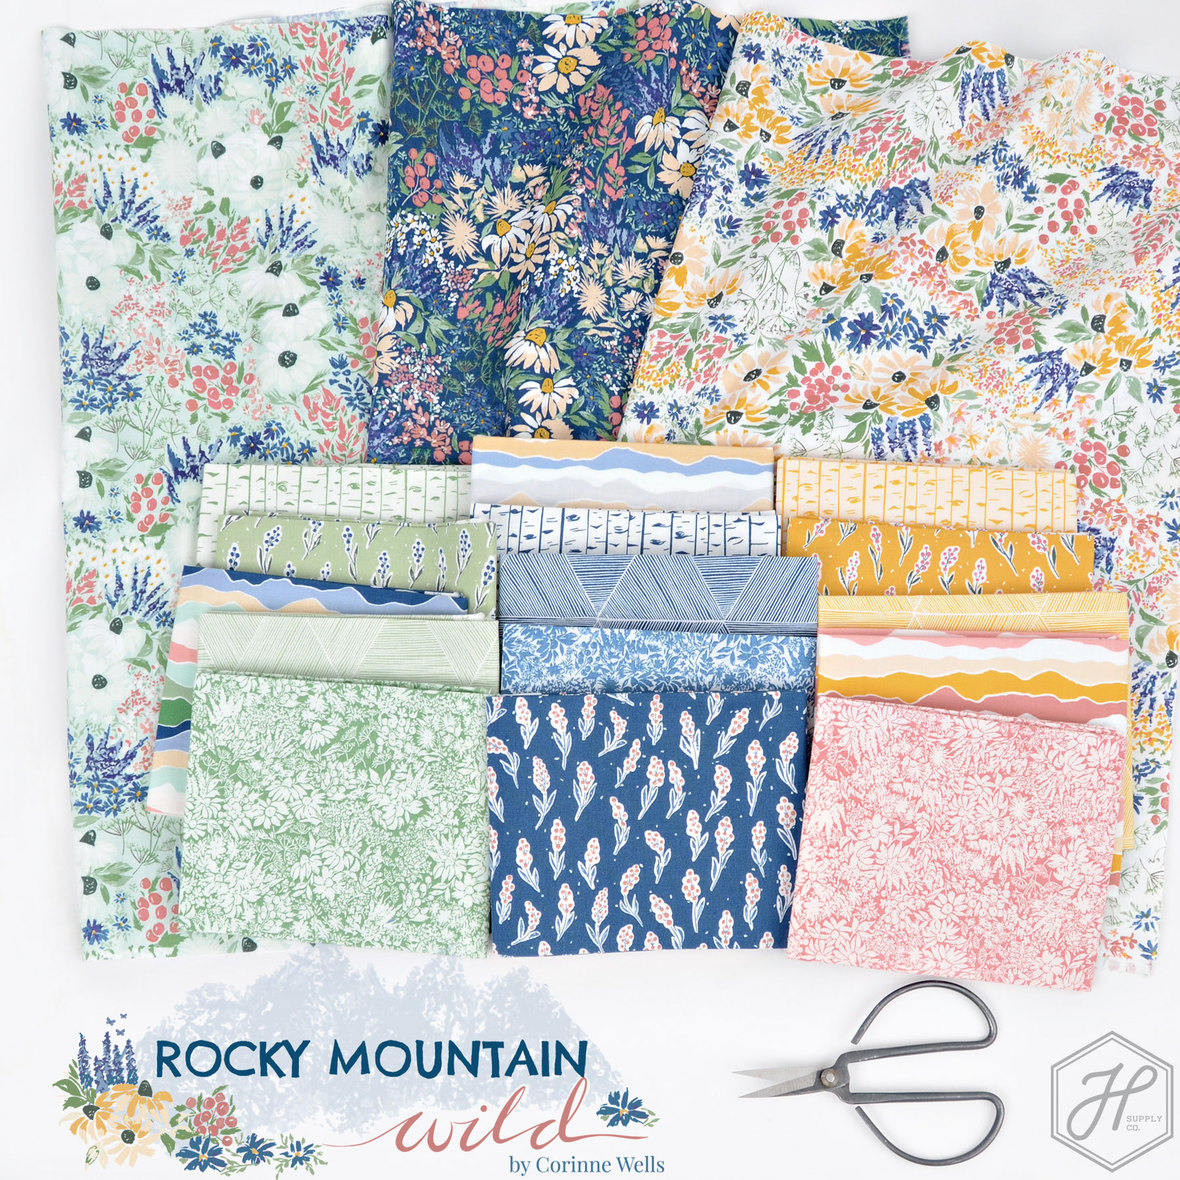 Rocky-Mountain-Wild-fabric-Corinne-Wells-for-Riley-Blake-at-Hawthorne-Supply-Co